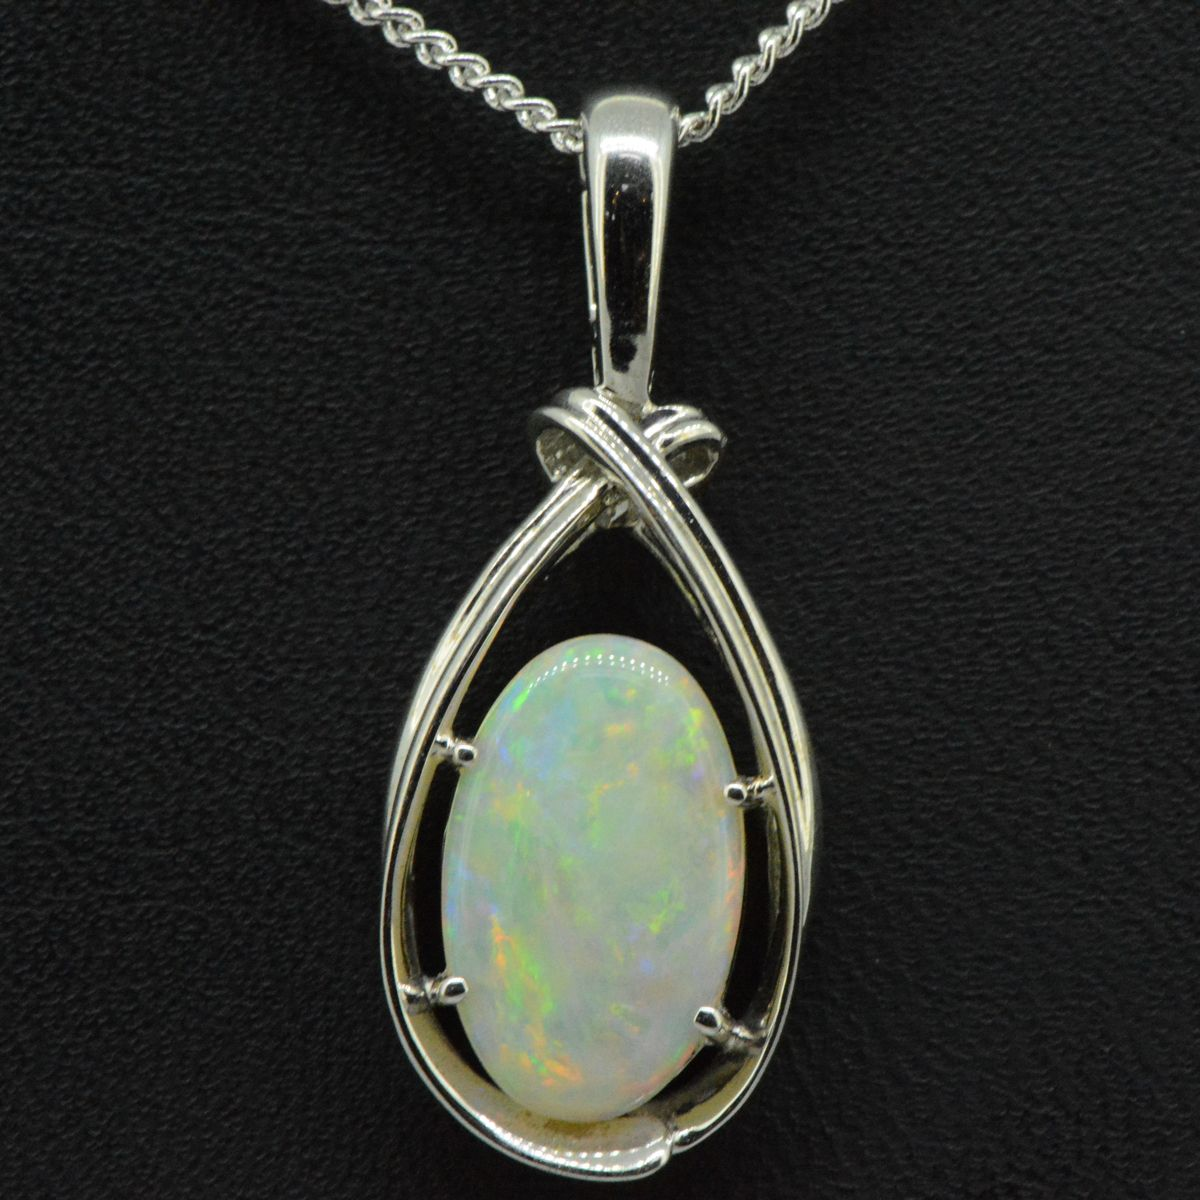 14ct white gold solid opal pendant (14mm x 9mm)